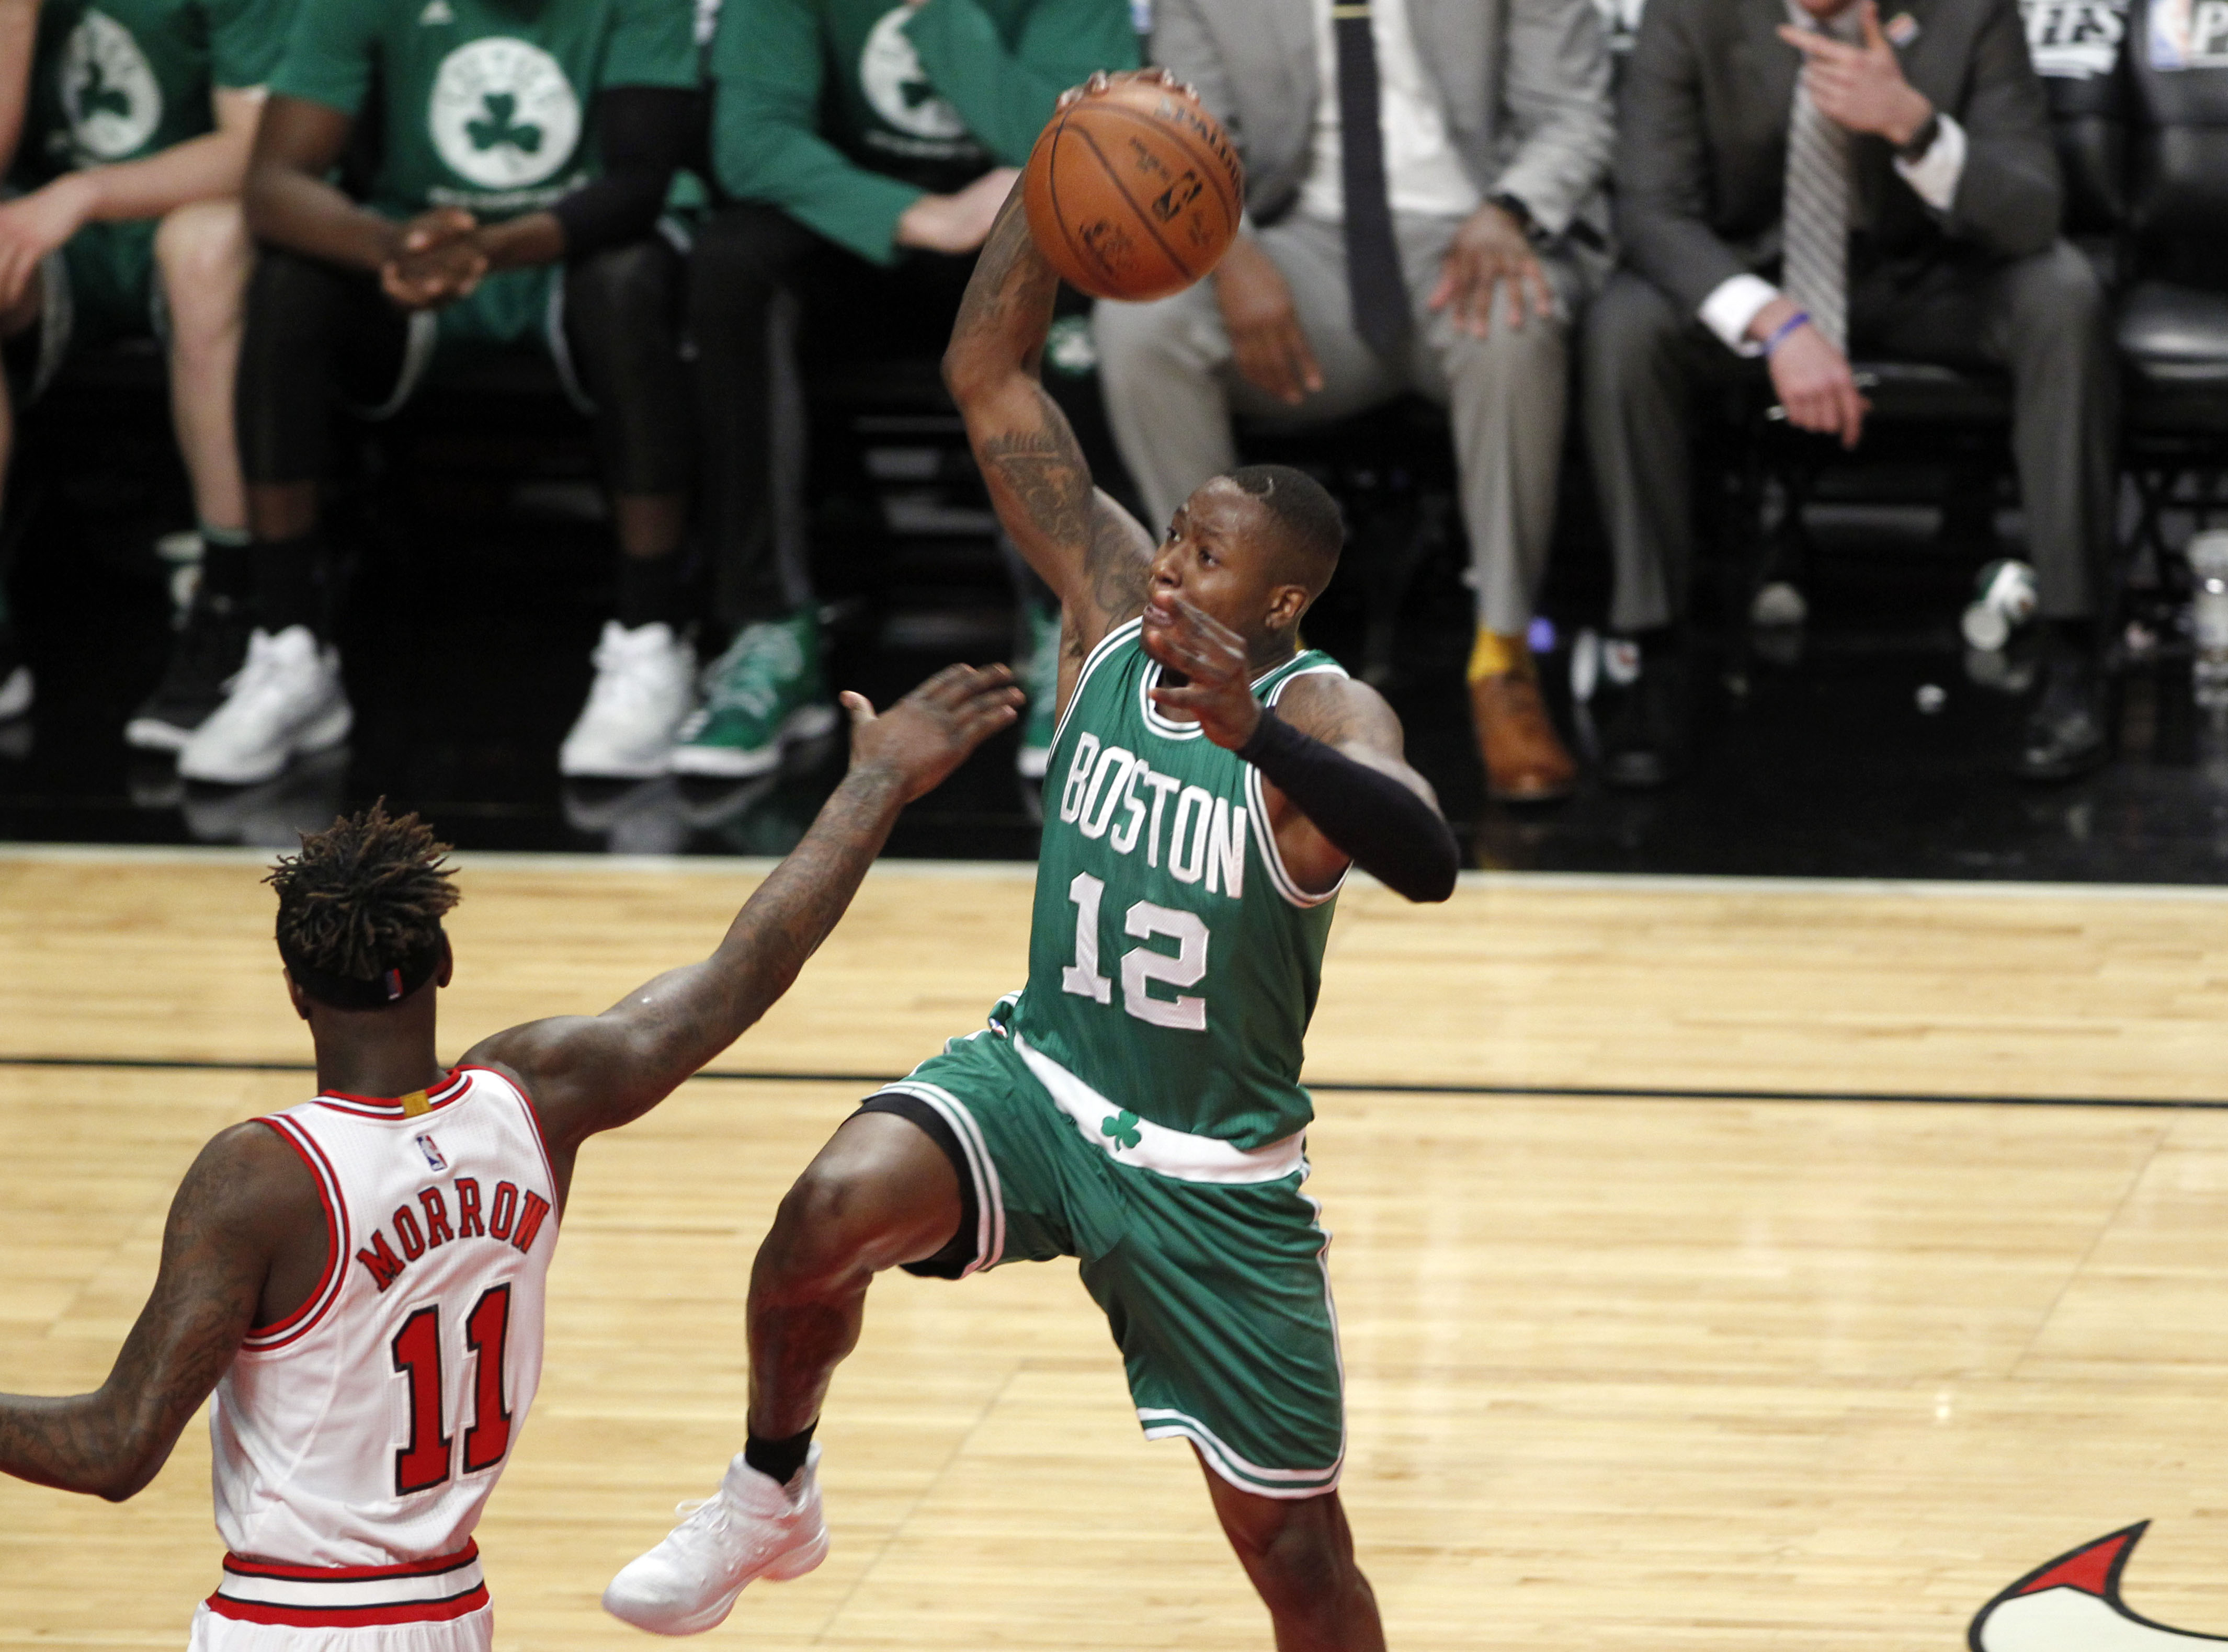 10024293-nba-playoffs-boston-celtics-at-chicago-bulls-1